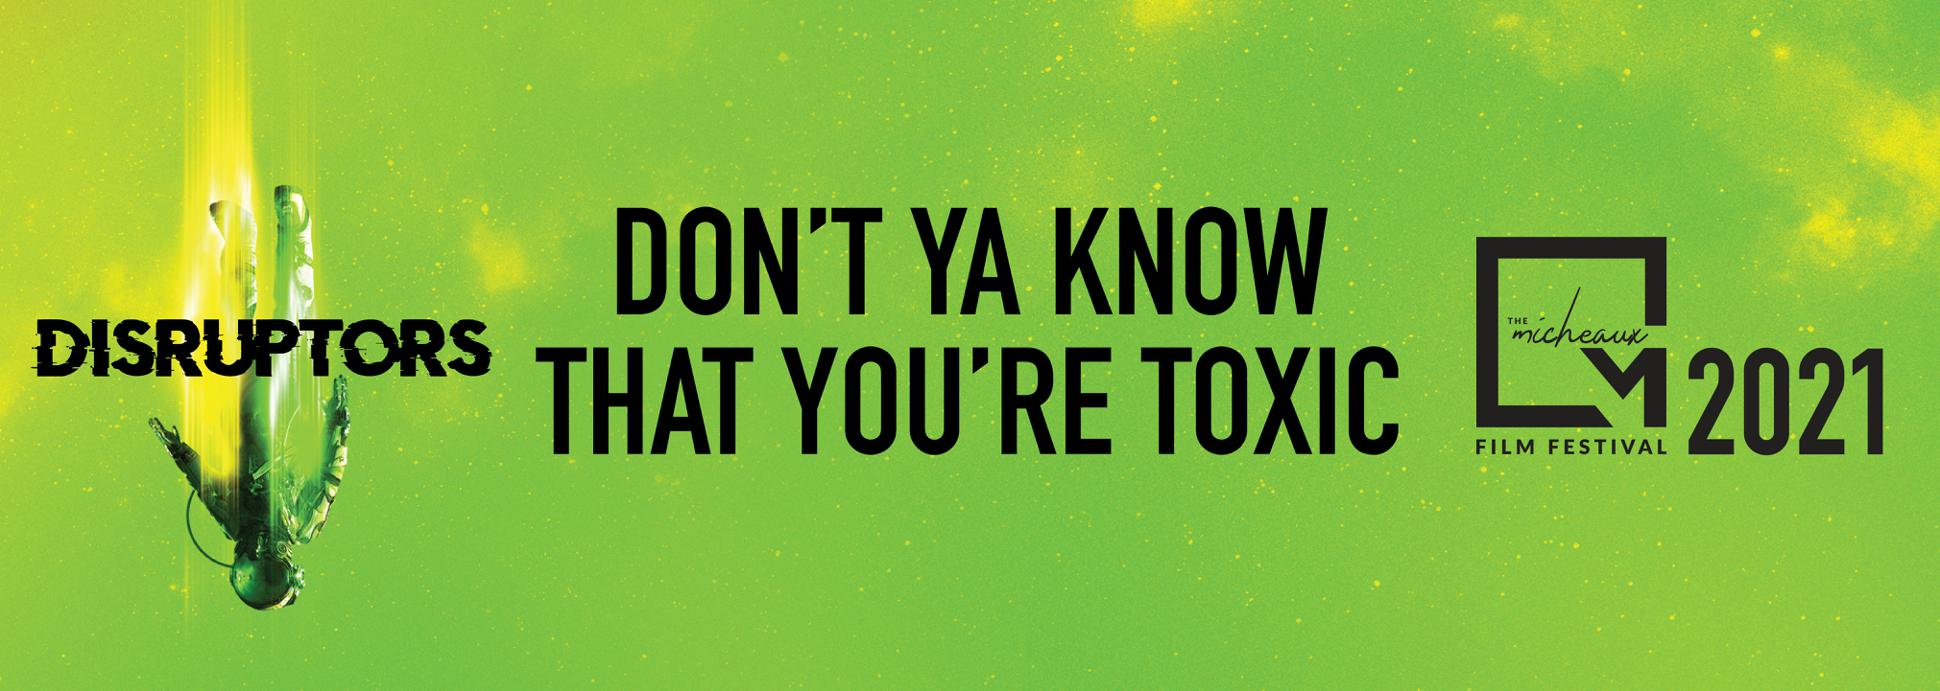 Don't Ya Know That You're Toxic